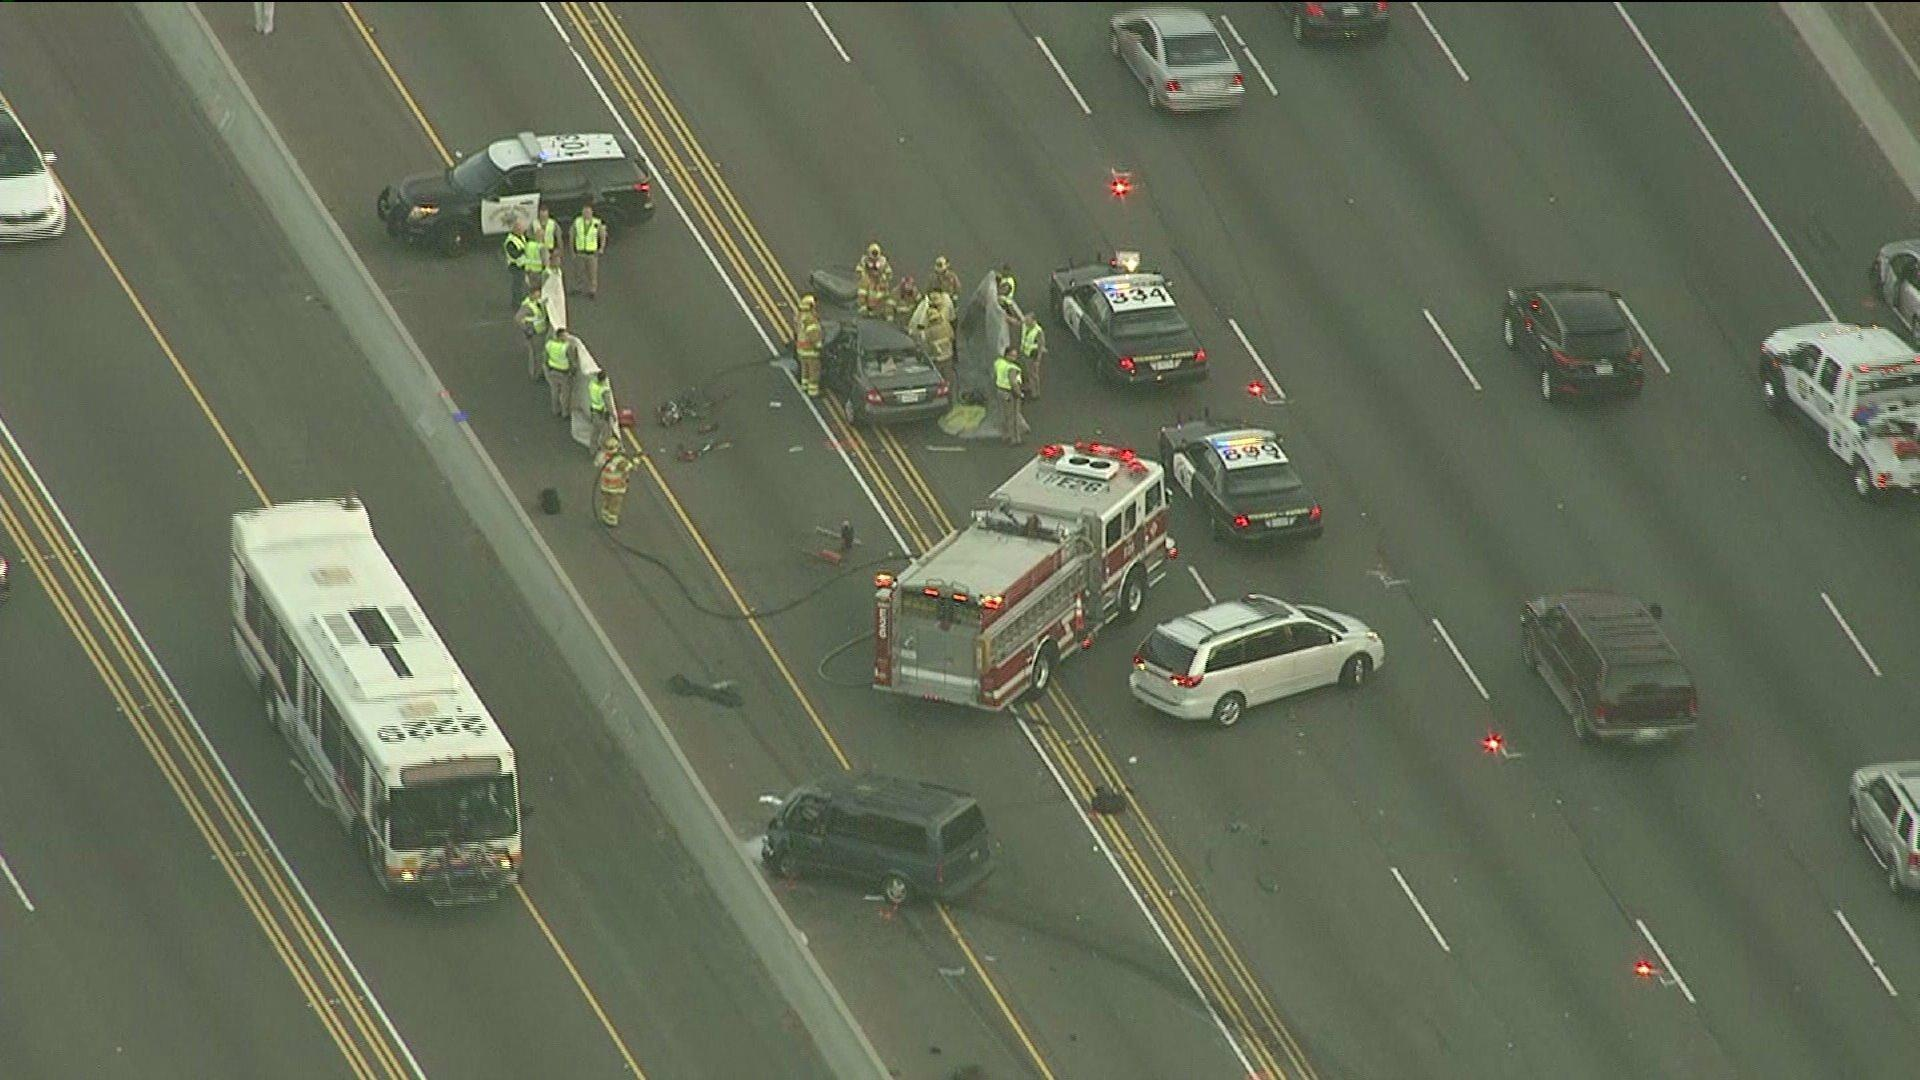 A crash that killed two people on the 5 Freeway in Irvine snarled the morning commute in both directions.